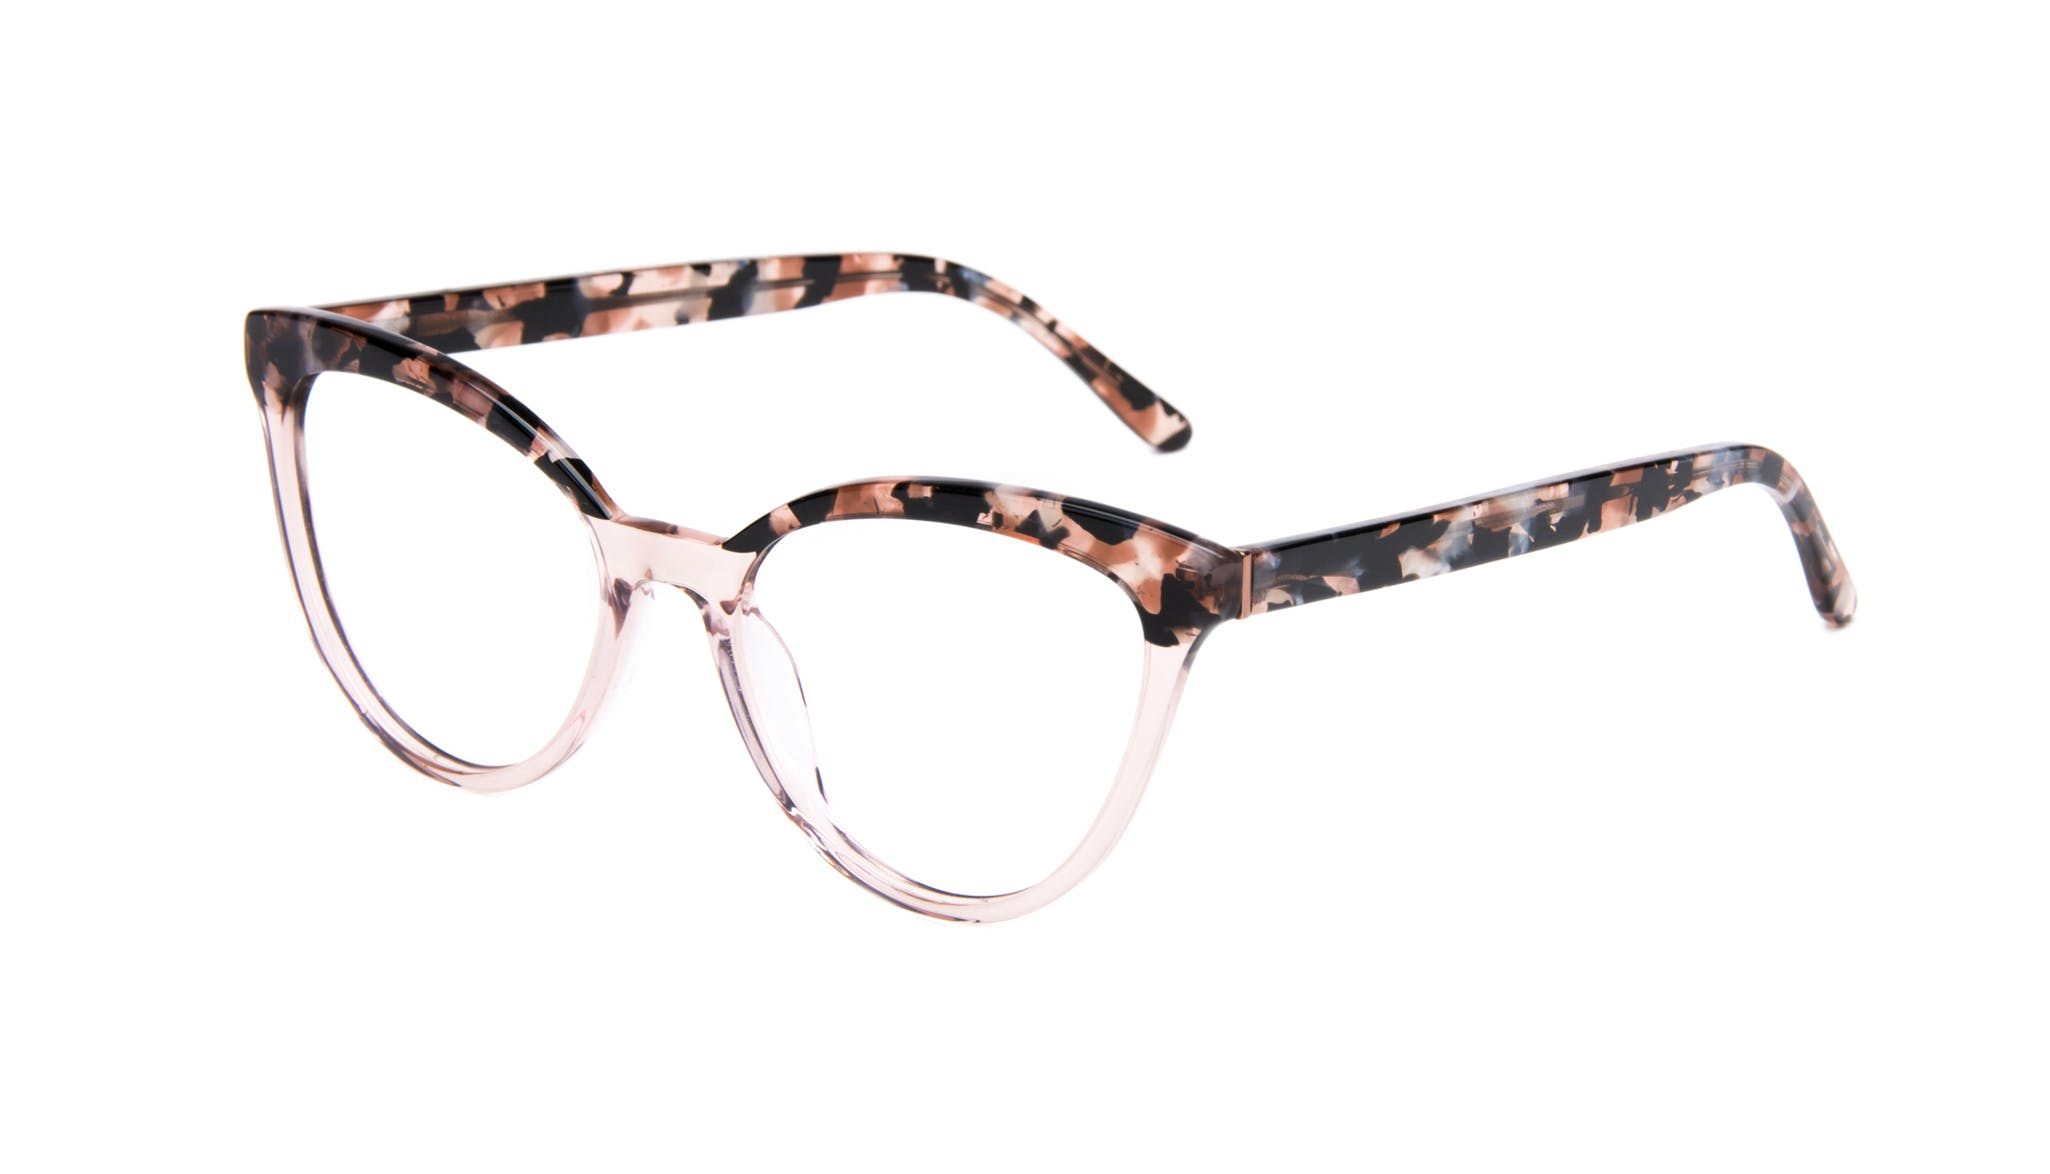 Affordable Fashion Glasses Cat Eye Daring Cateye Eyeglasses Women Reverie Rose Tort Tilt